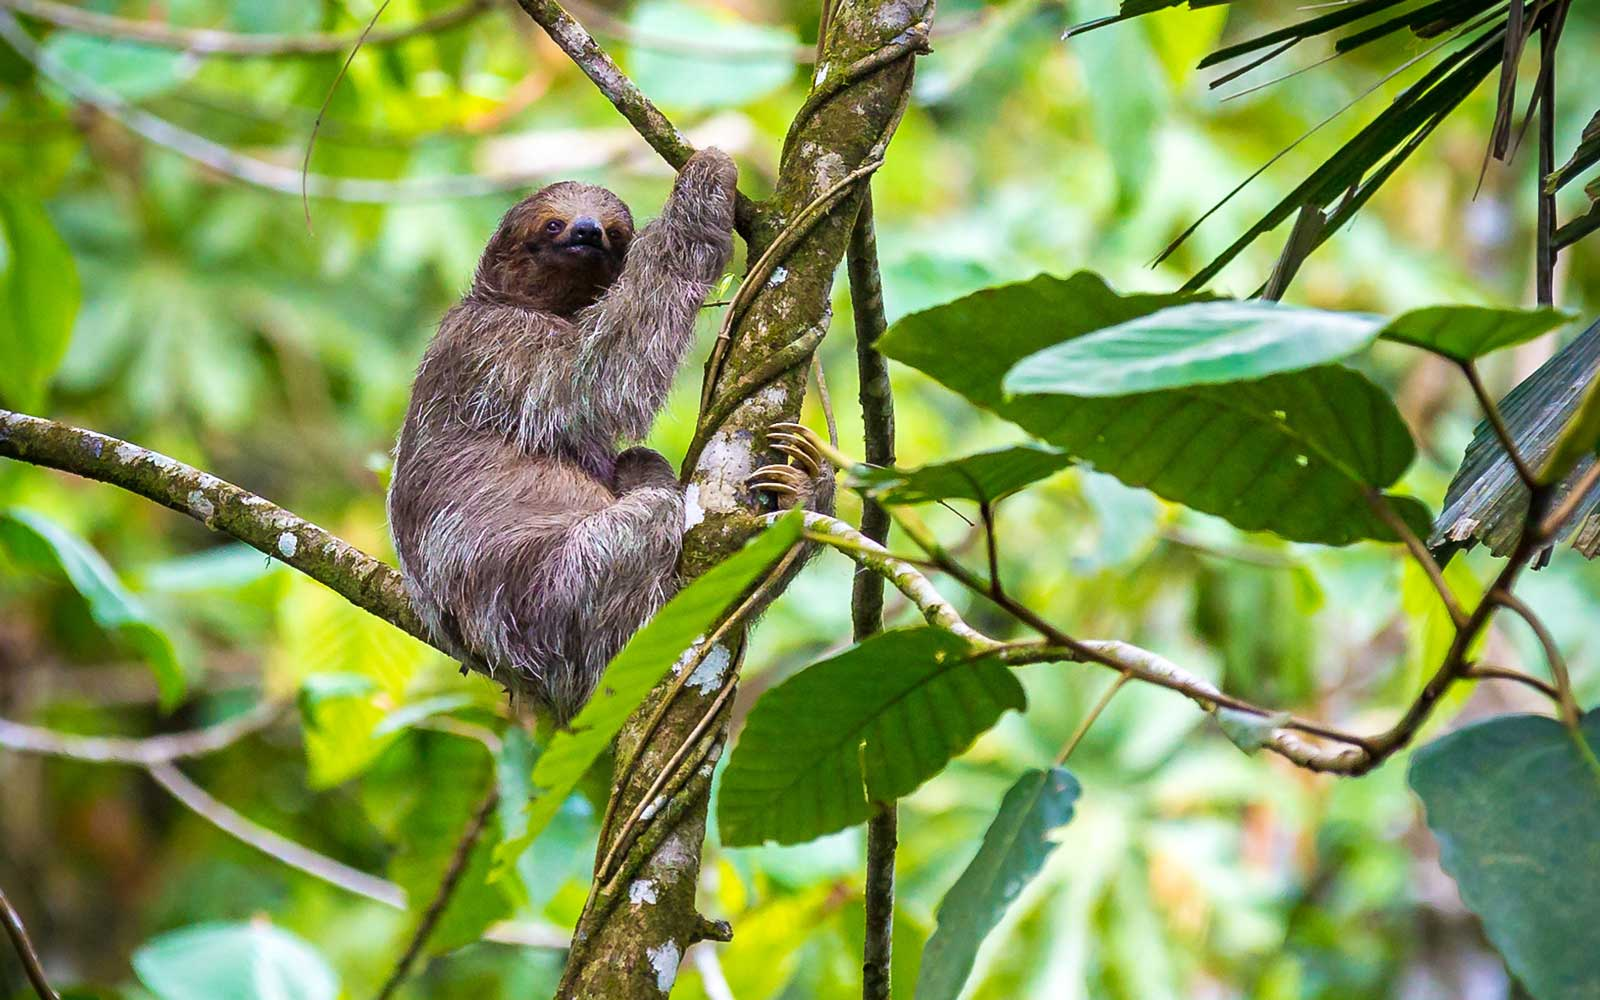 Sloths at Nayara Resort in Costa Rica